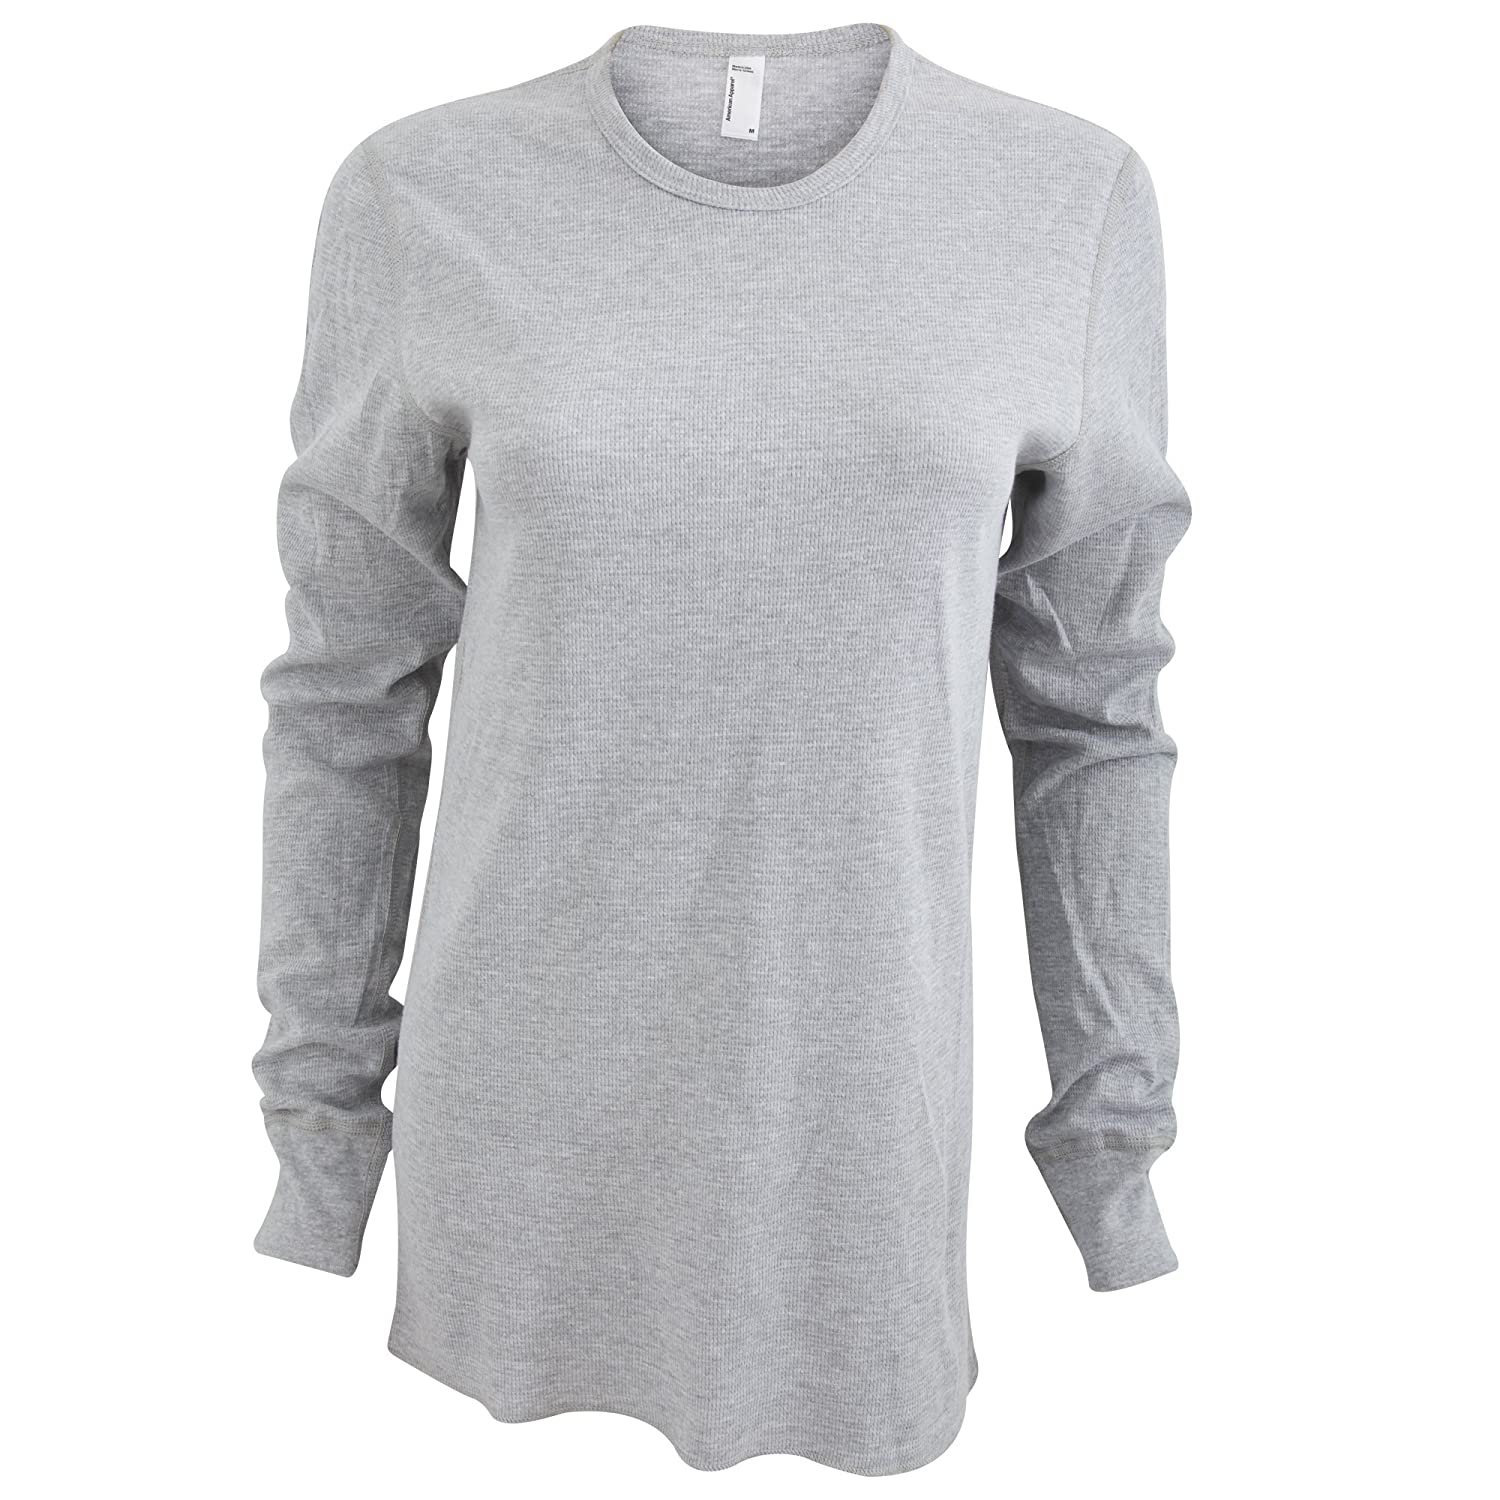 American Apparel Unisex Baby Thermal Long Sleeve T-Shirt -2XL- -Heather Grey-